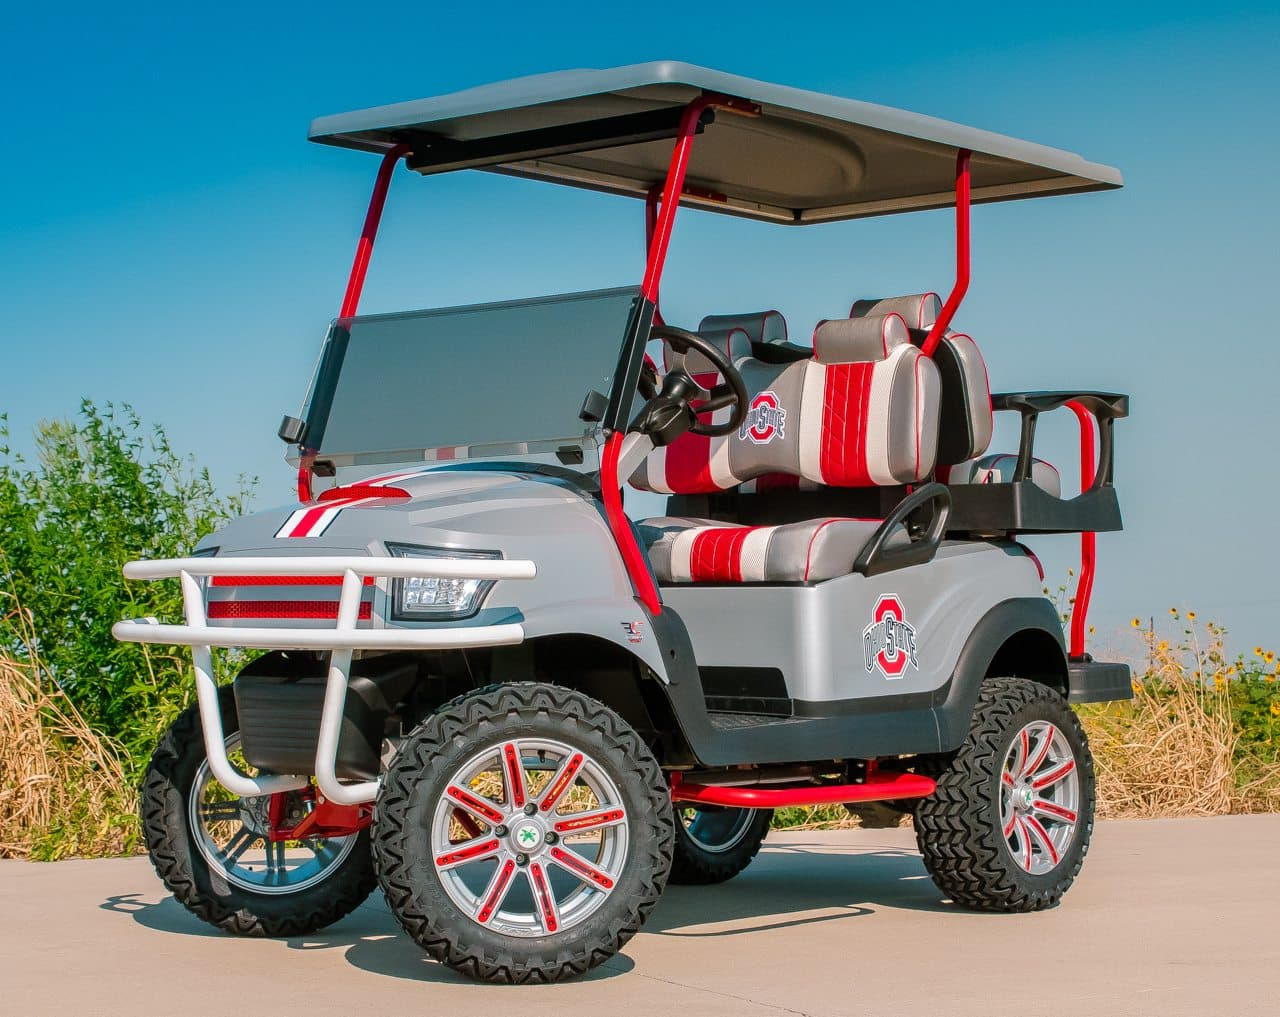 The Ohio State Golf Cart